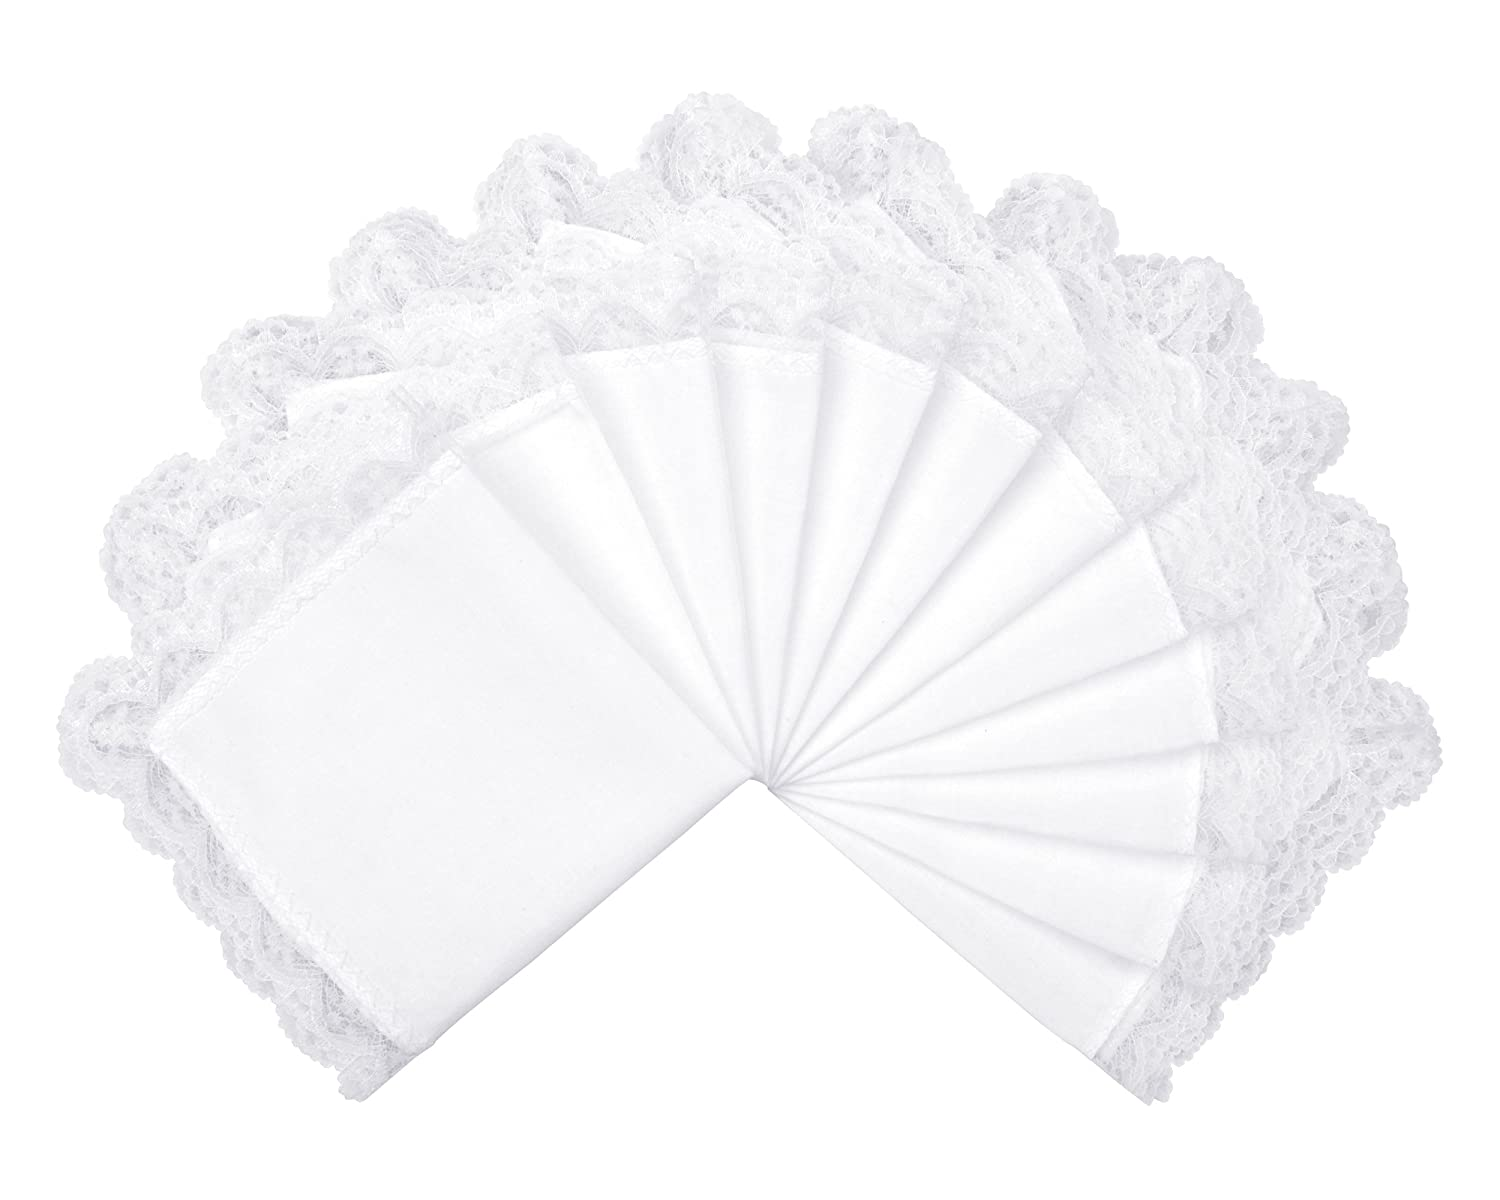 Milesky Solid White Wedding Cotton Handkerchiefs with Lace Edges Square 10 x 10 (Pack of 6)